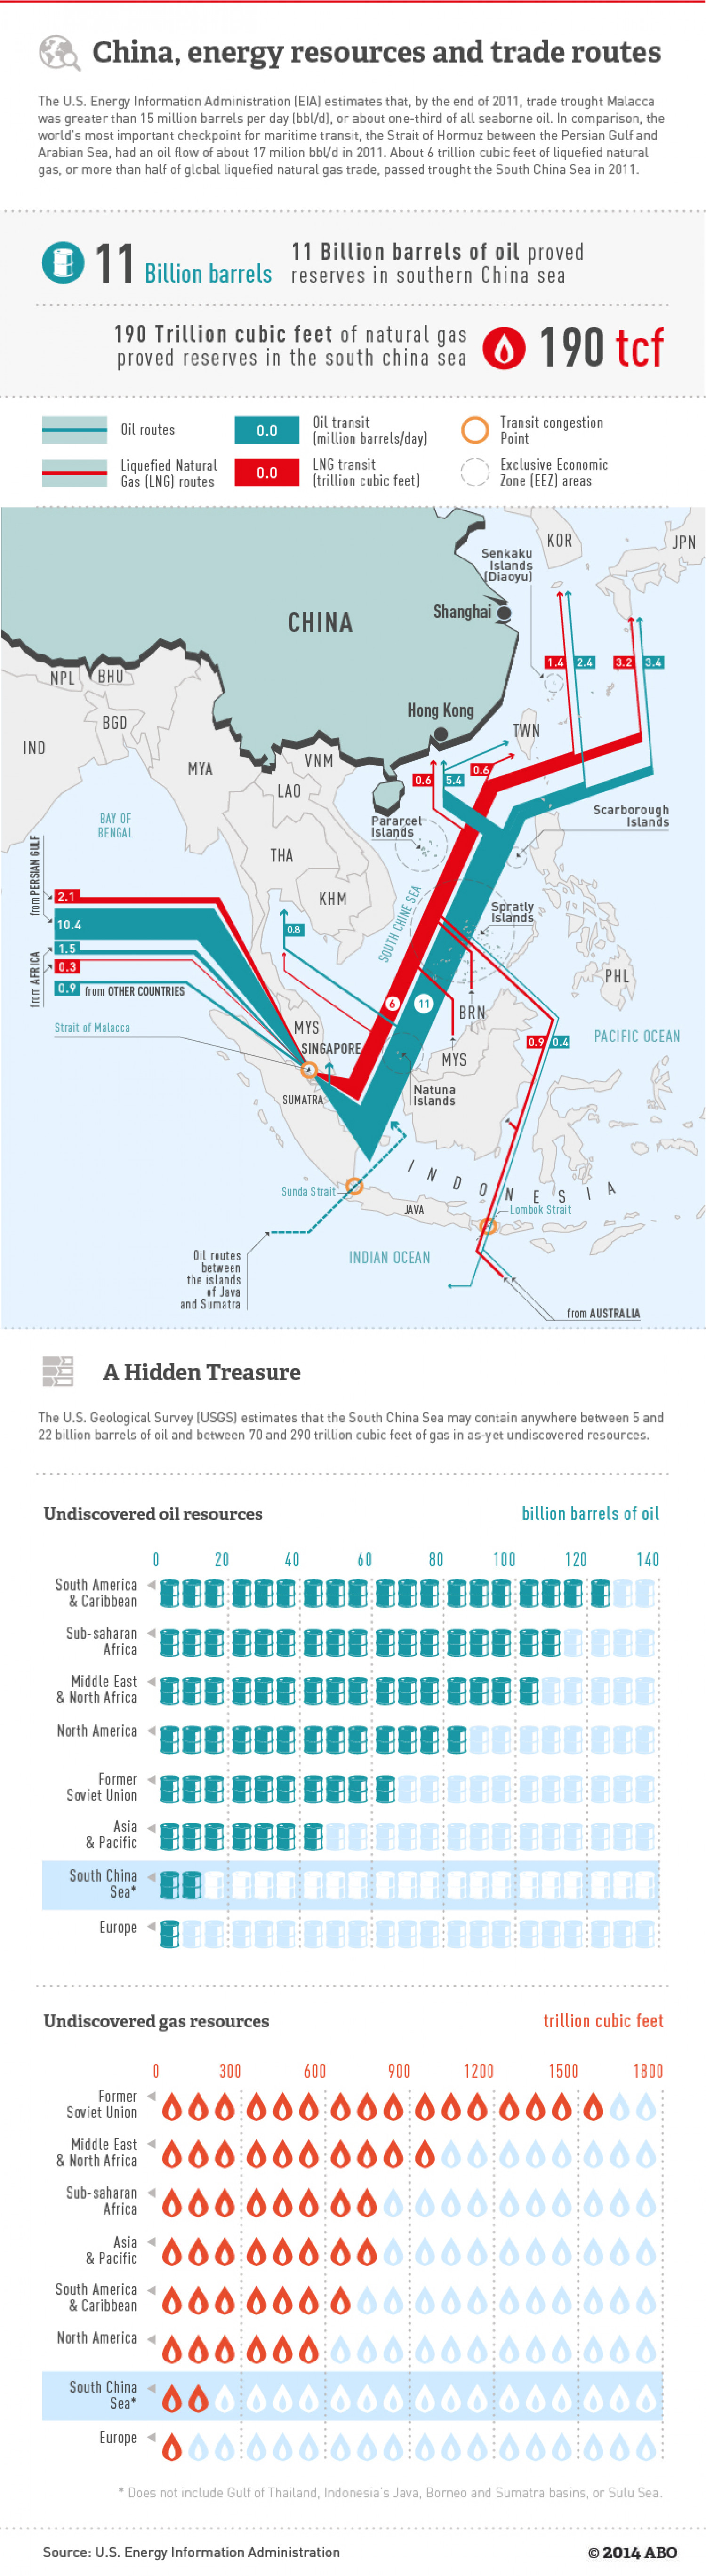 China, energy resources and trade routes Infographic